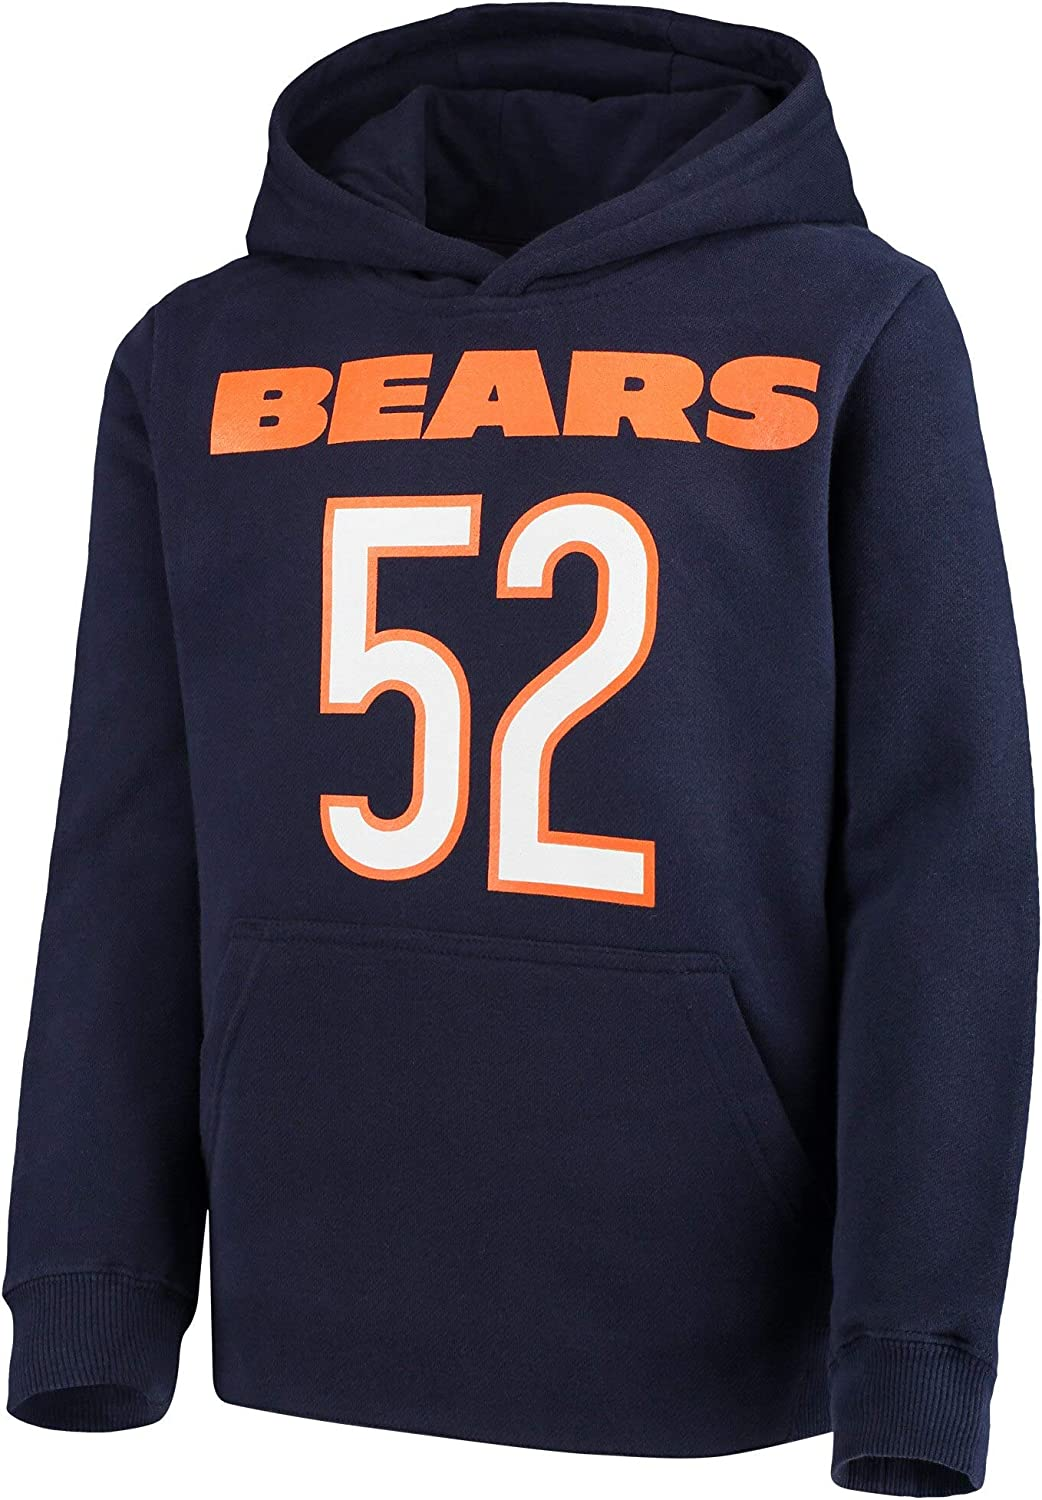 OuterStuff NFL Boys Youth 8-20 Mainliner Player Name /& Number Fleece Pullover Hoodie Sweatshirt